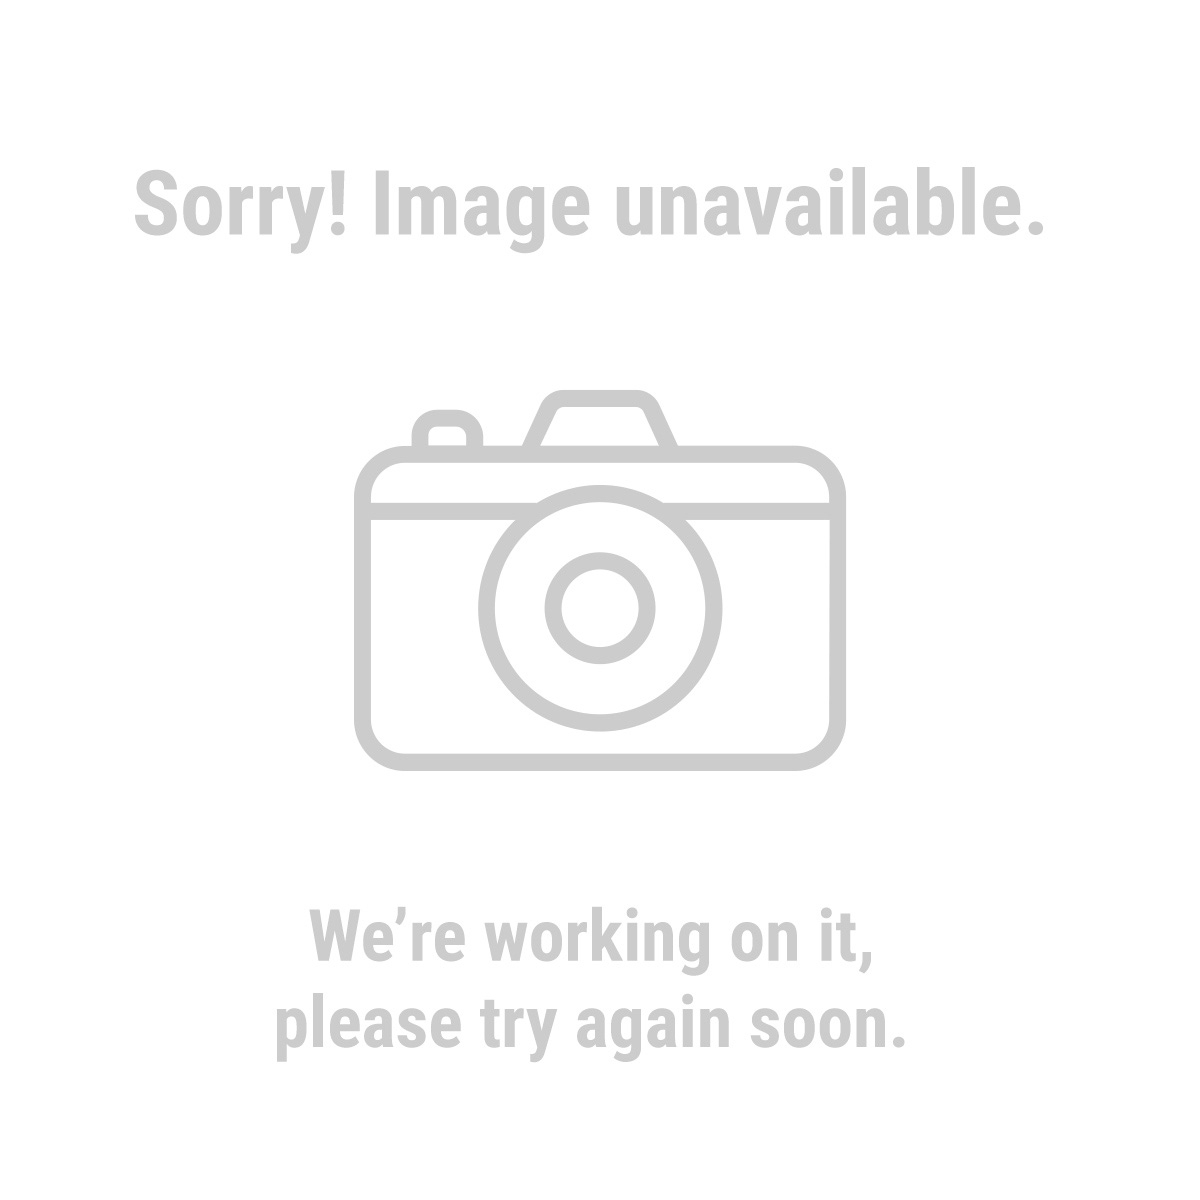 Chicago Electric Welding 60767 240 Volt Inverter Plasma Cutter with Digital Display